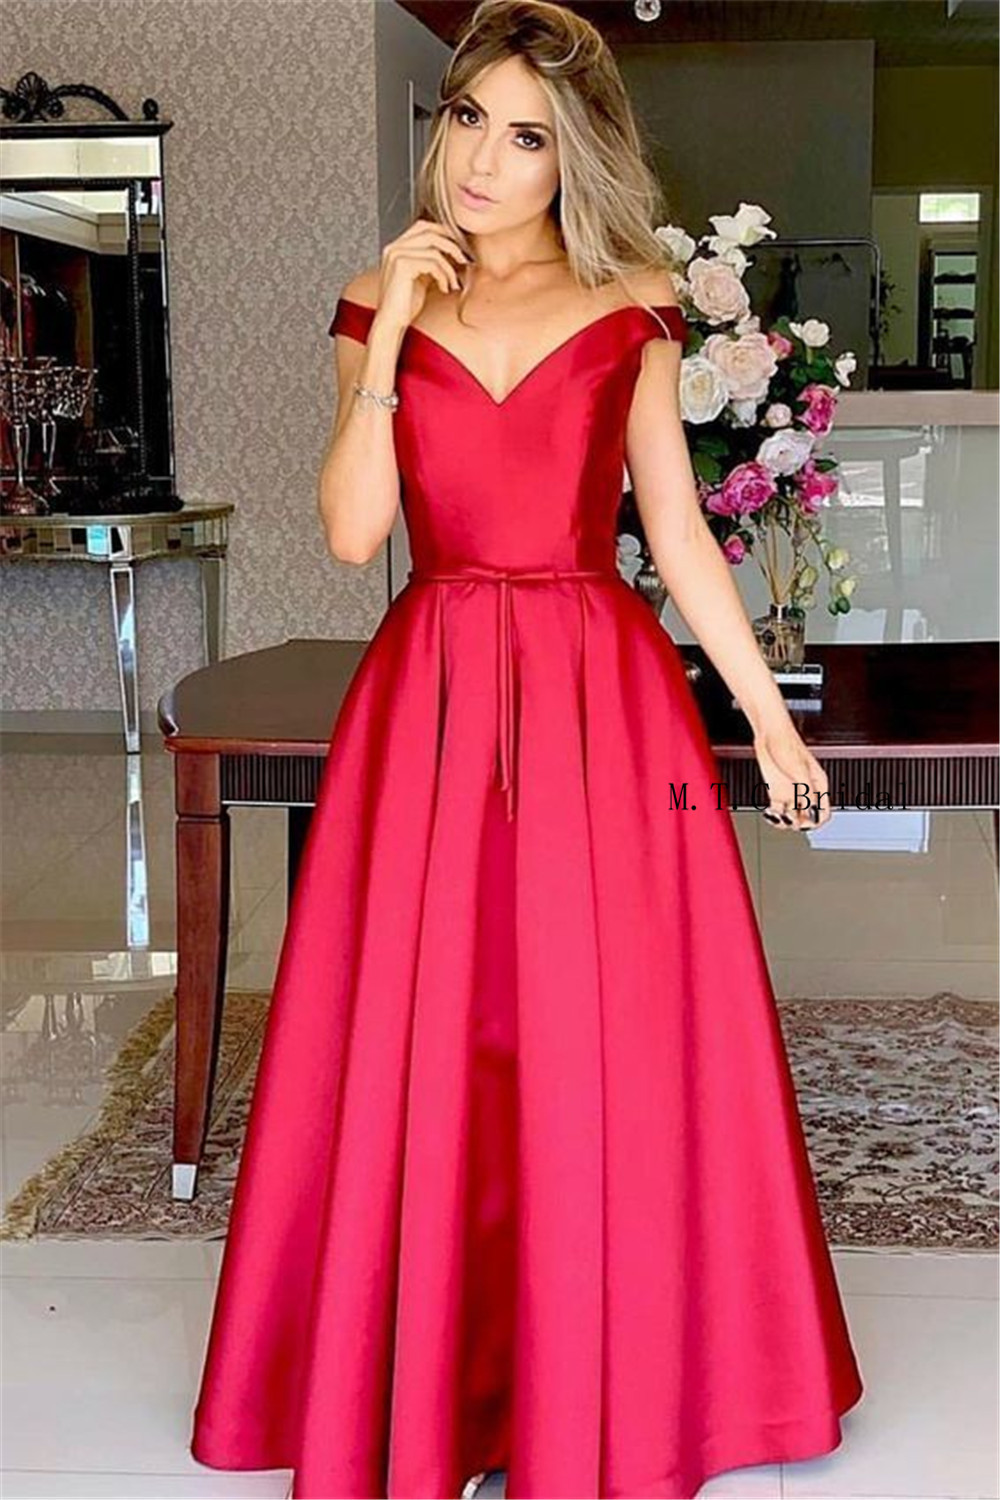 Elegant Red Long   Prom     Dresses   Off The Shoulder Boat Neck A Line High Quality Satin Evening Gowns 2019 Custom Made Robe De Soiree